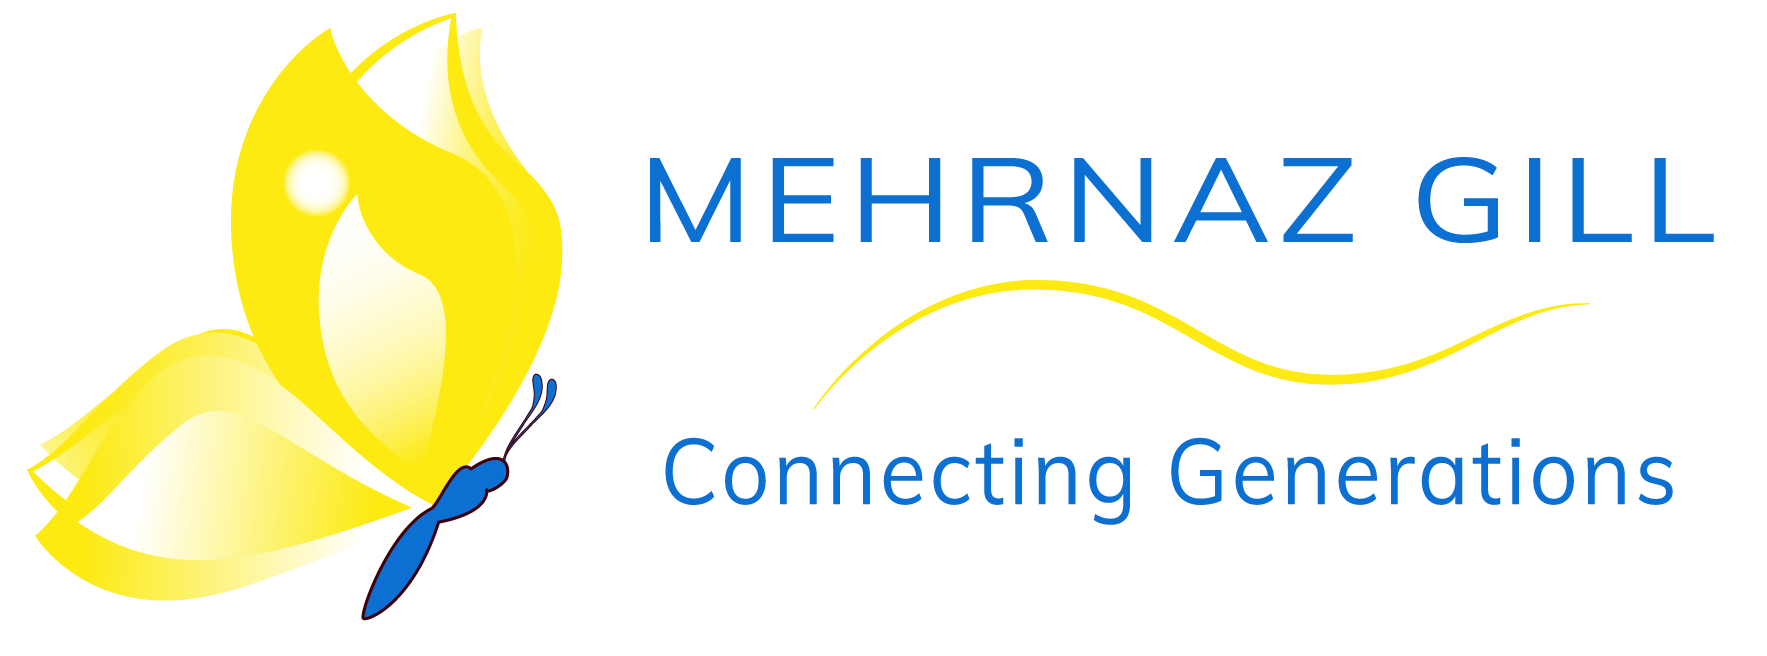 Welcome to the Website of Mehrnaz Gill